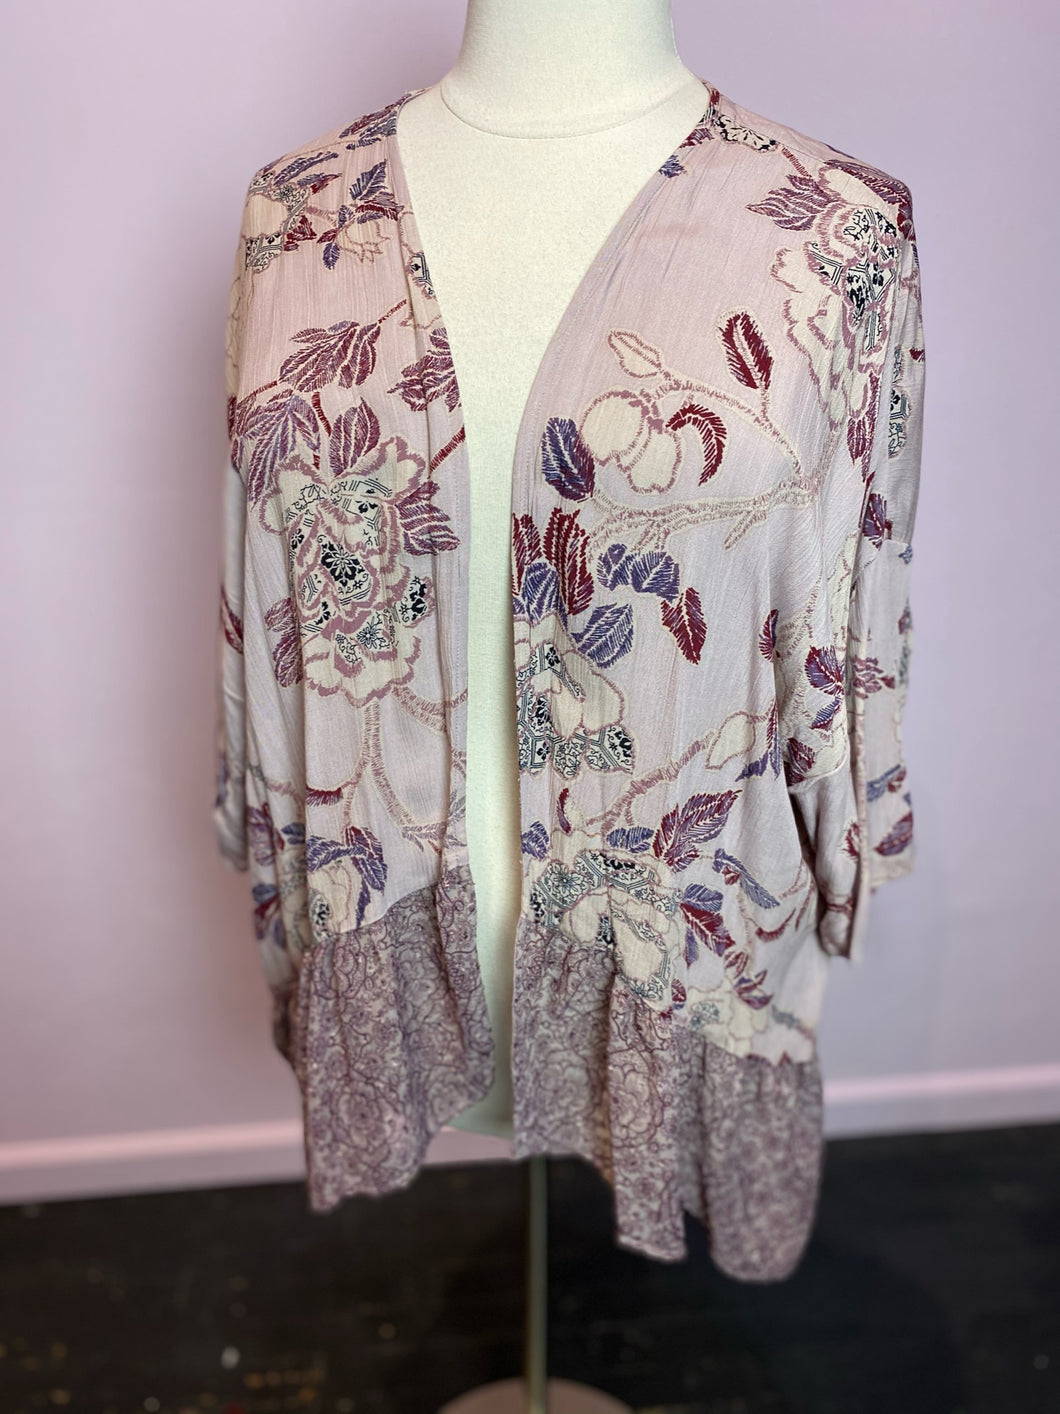 Blush Pink Embroidered Floral Multiprint Duster by Knox Rose, Size 2X